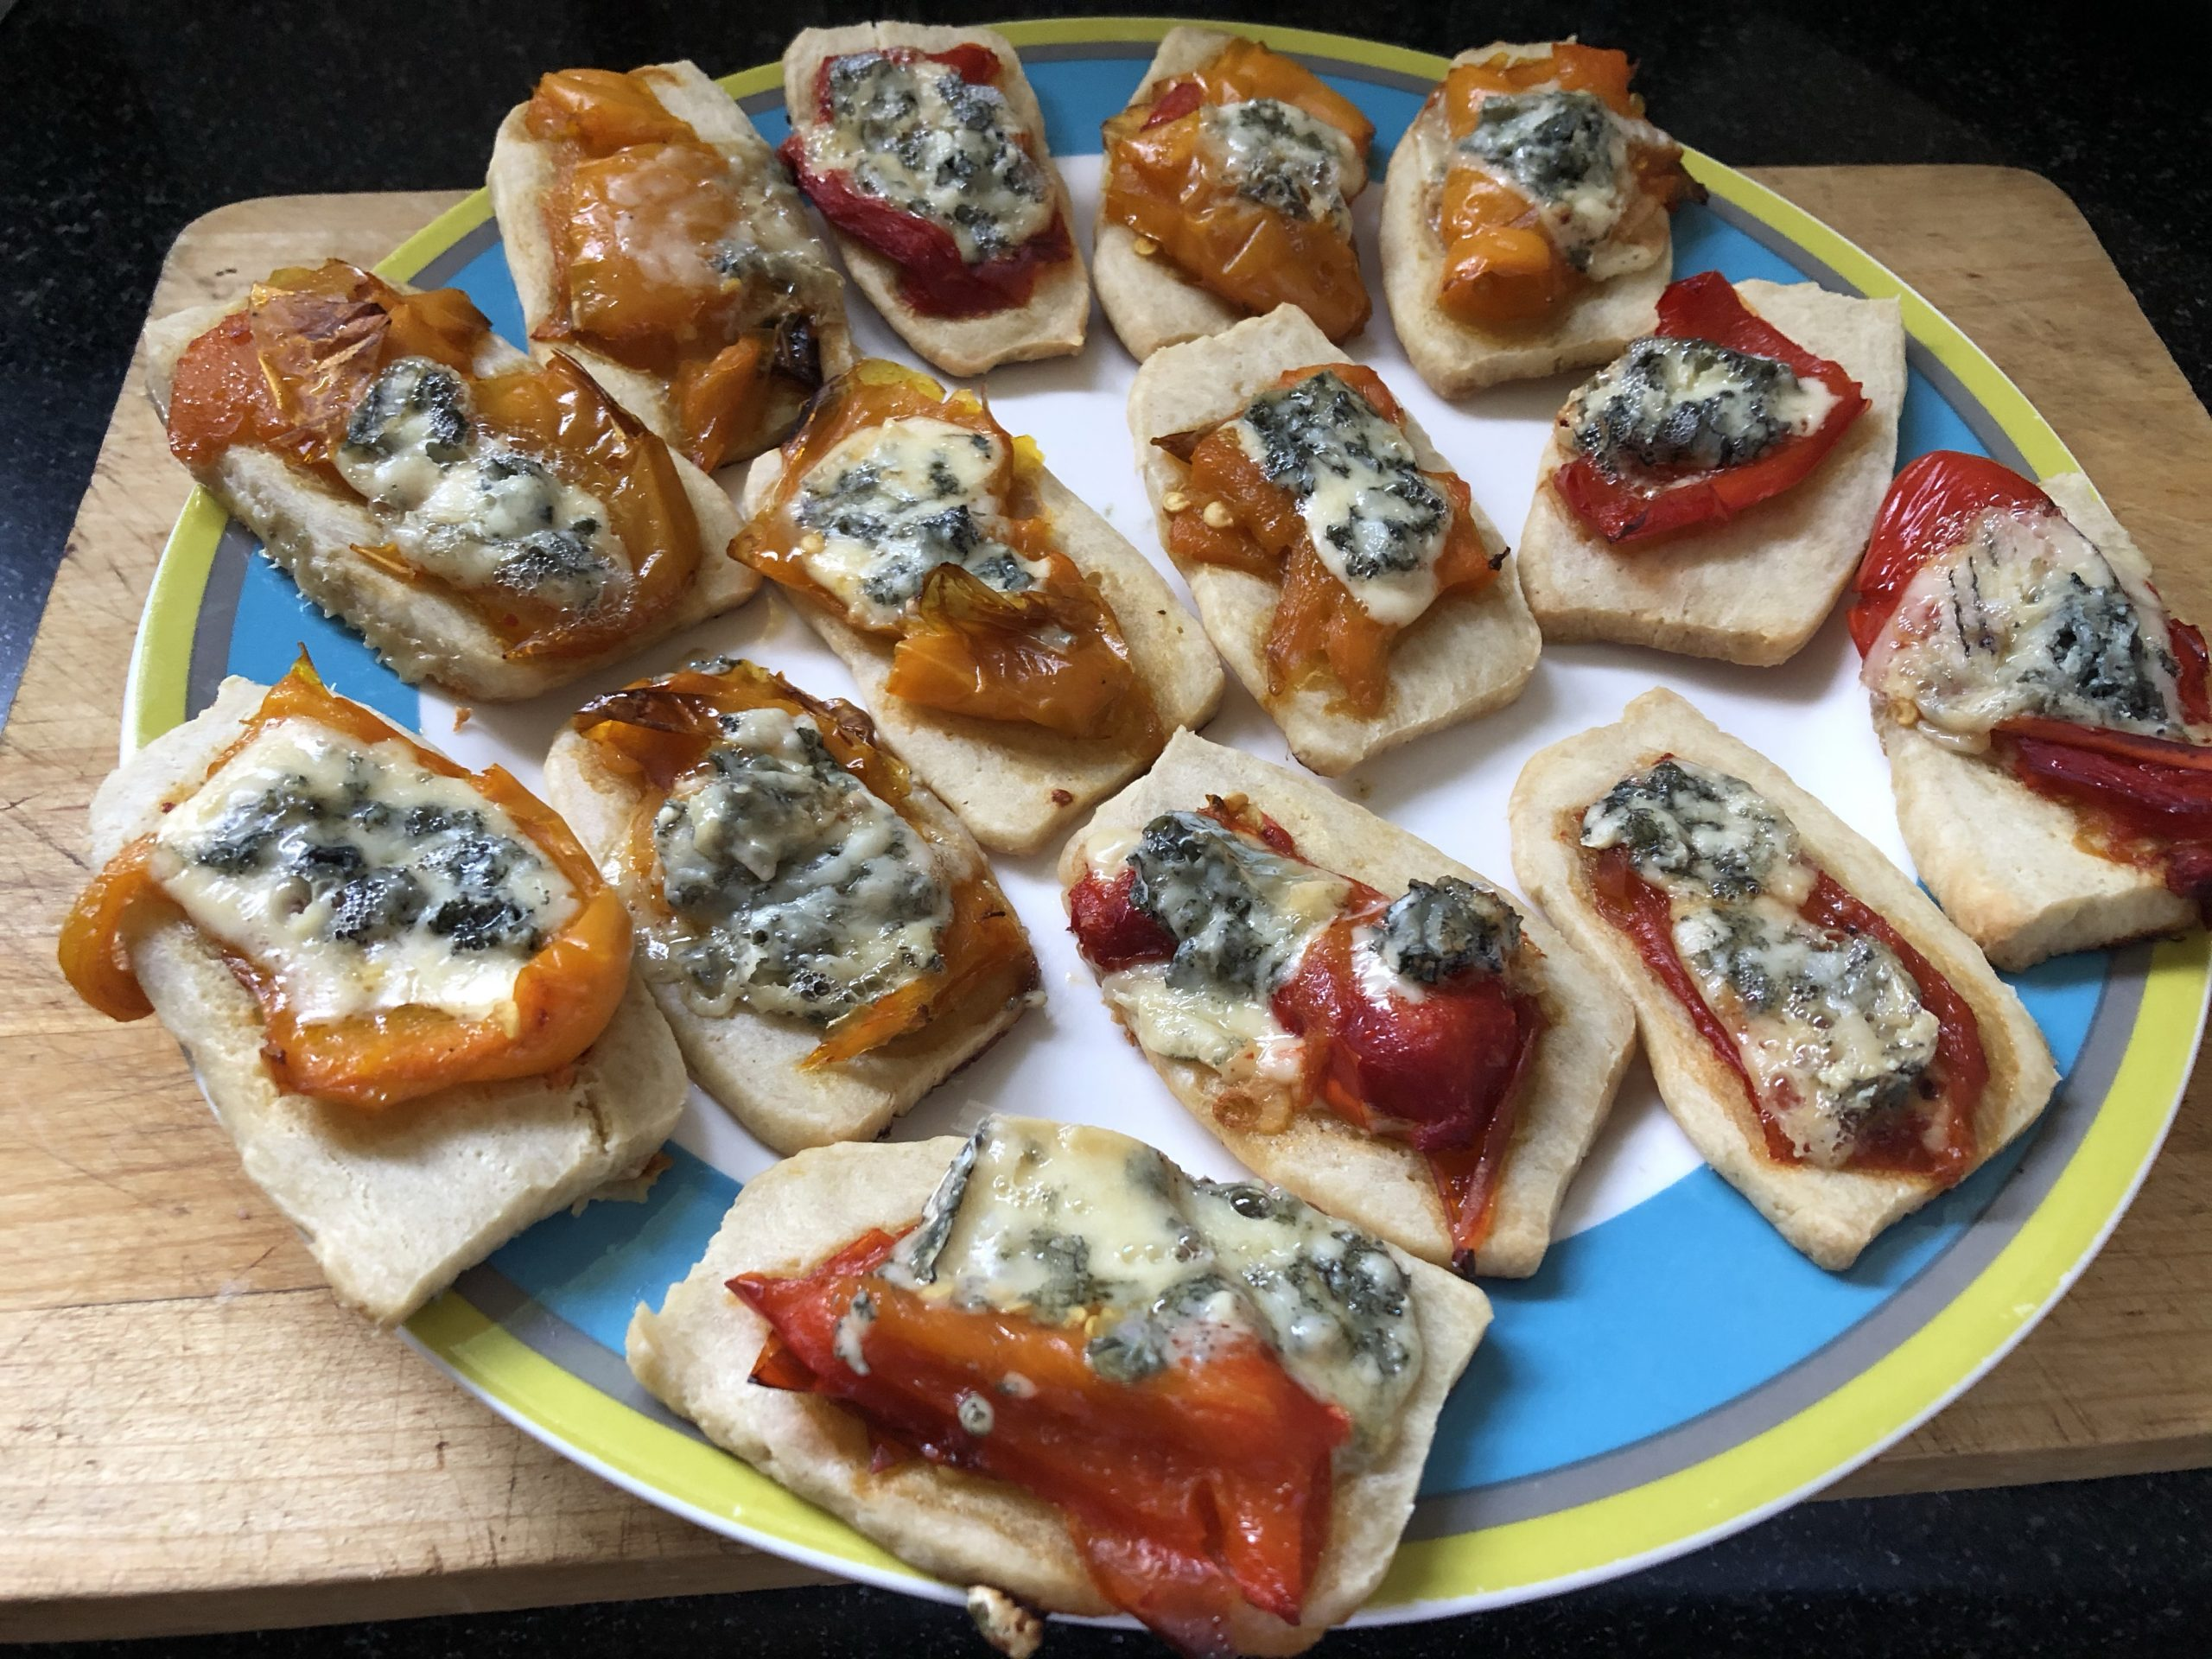 Pepper and blue cheese canapes